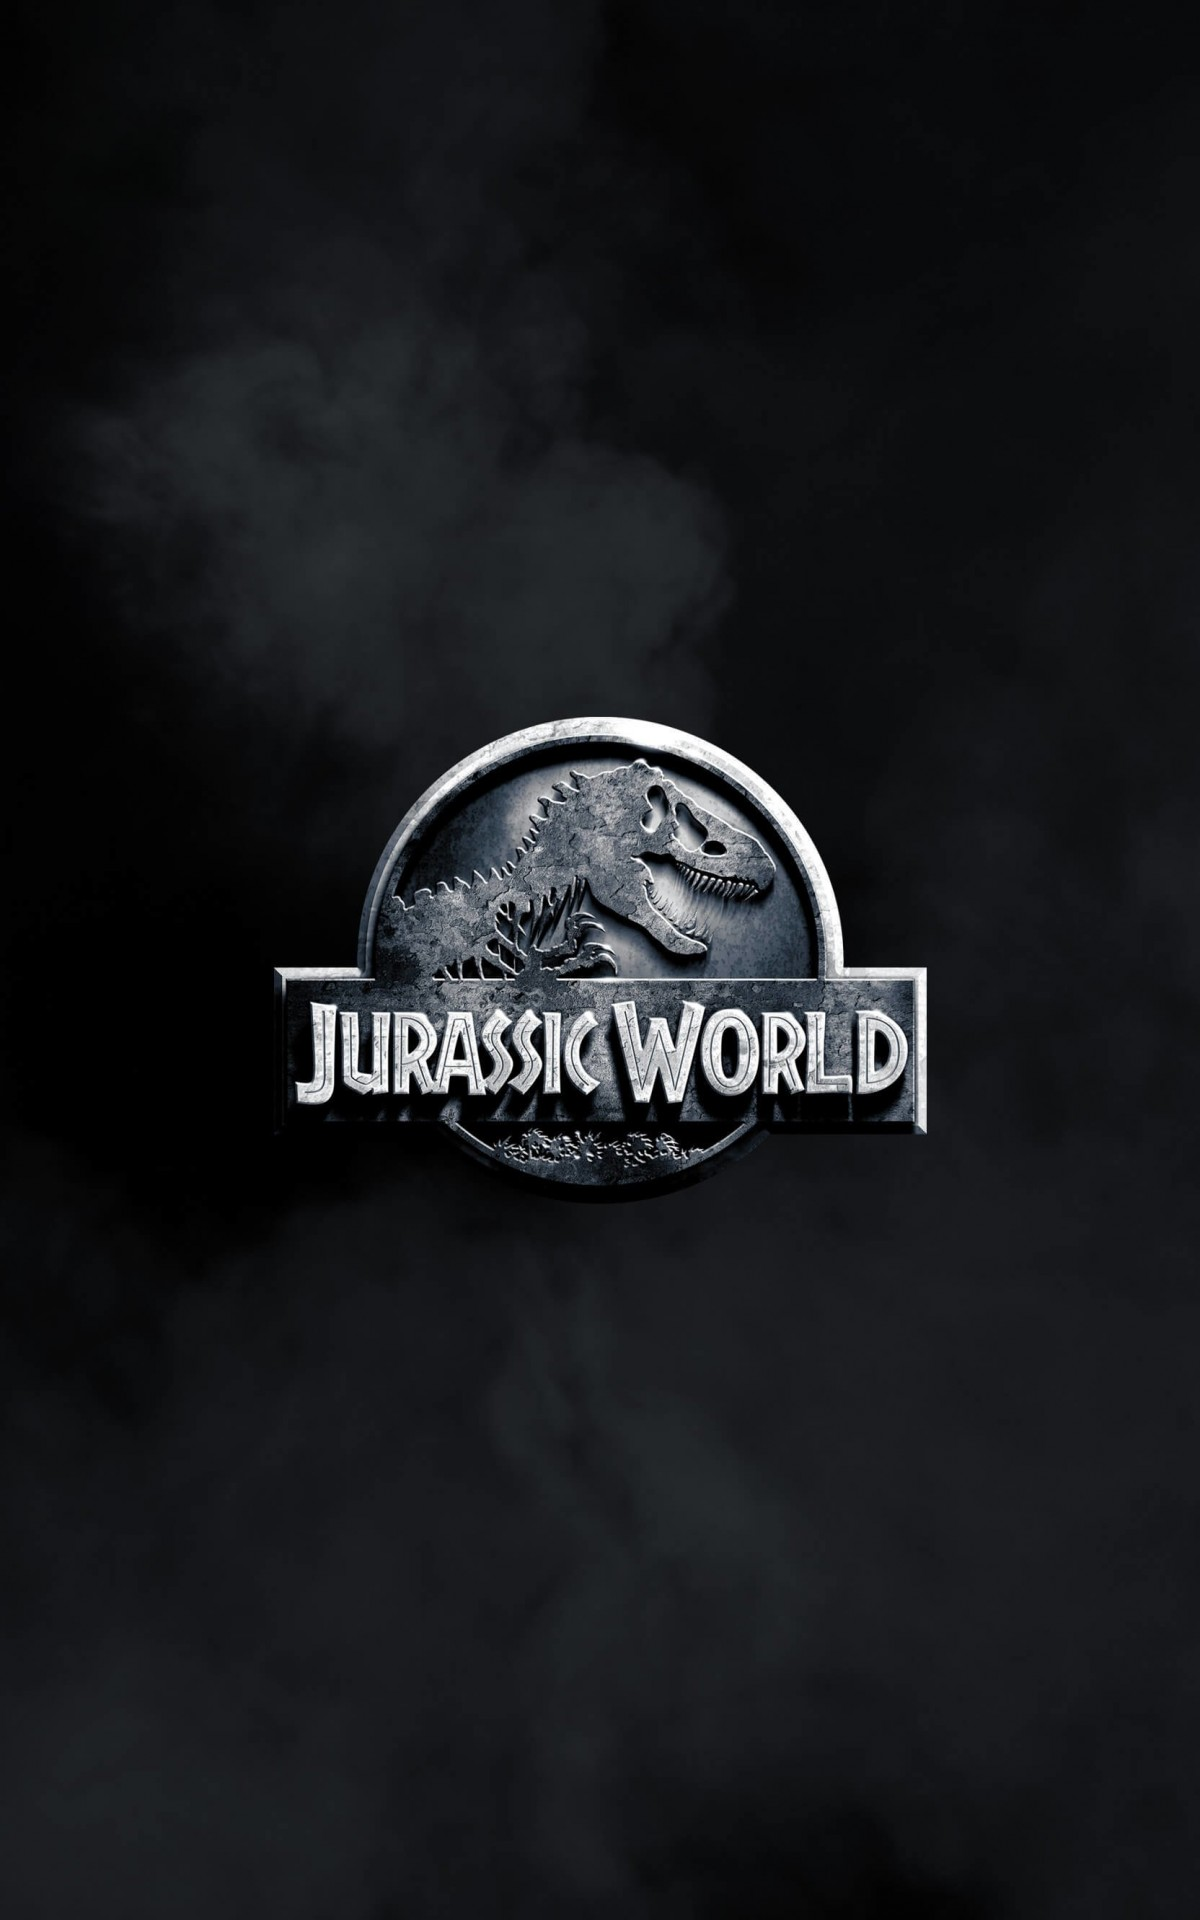 Jurassic World Wallpaper for Amazon Kindle Fire HDX